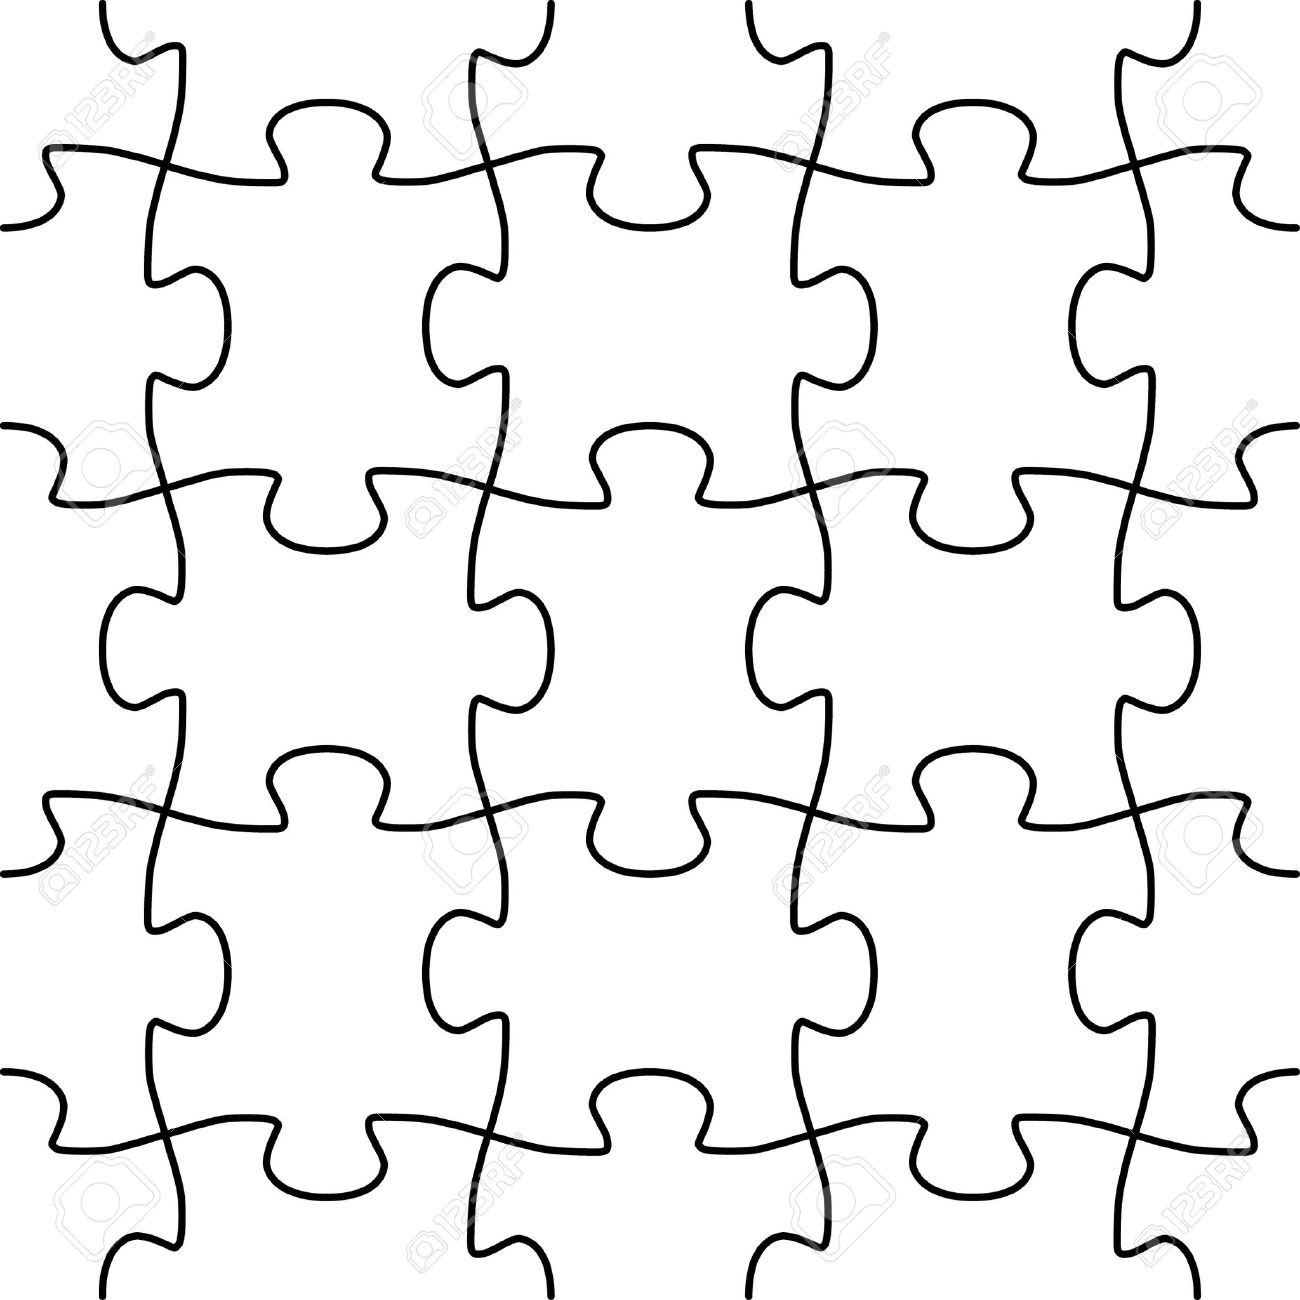 Seamless Vector Shape Of Puzzle Game Royalty Free Cliparts ...